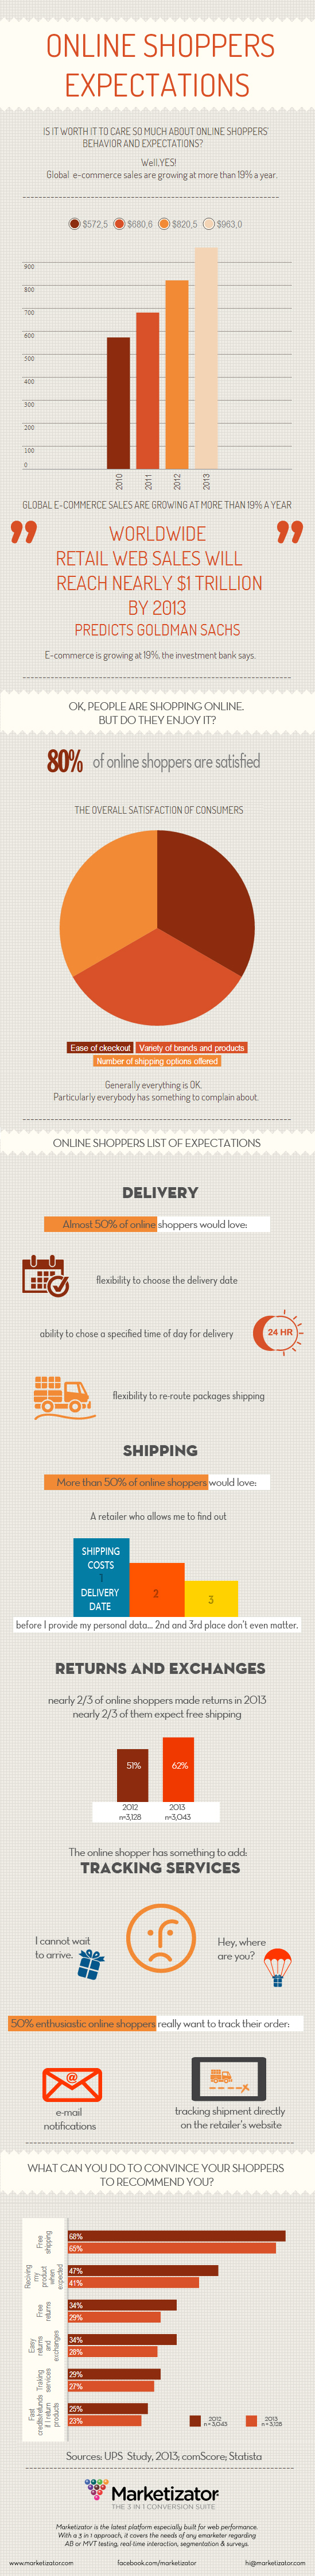 Online shoppers expectations